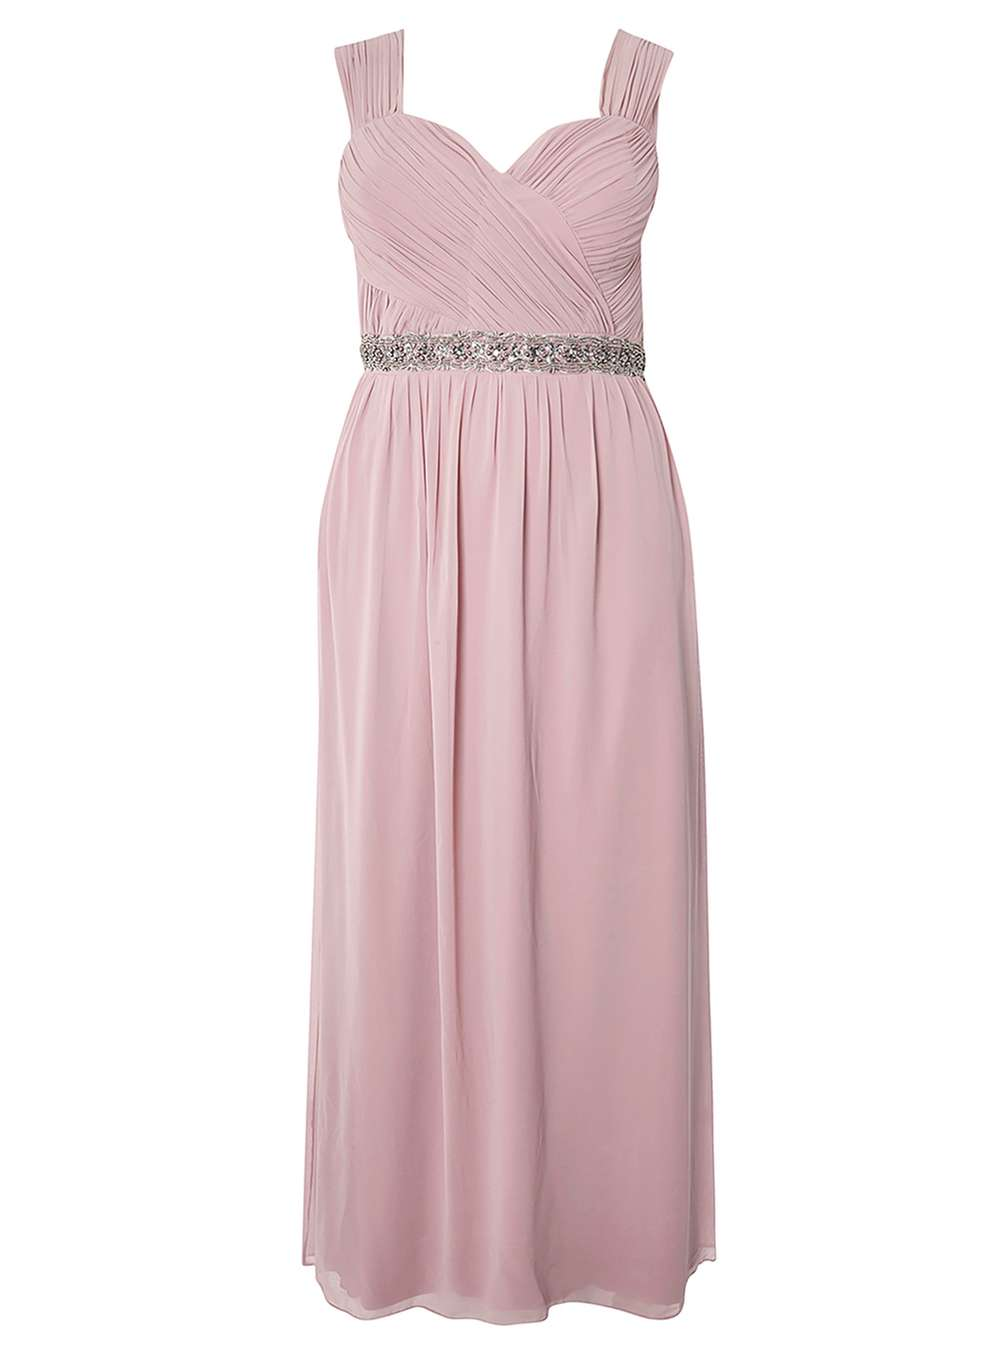 **Showcase Curve Dusky Pink Maxi Dress